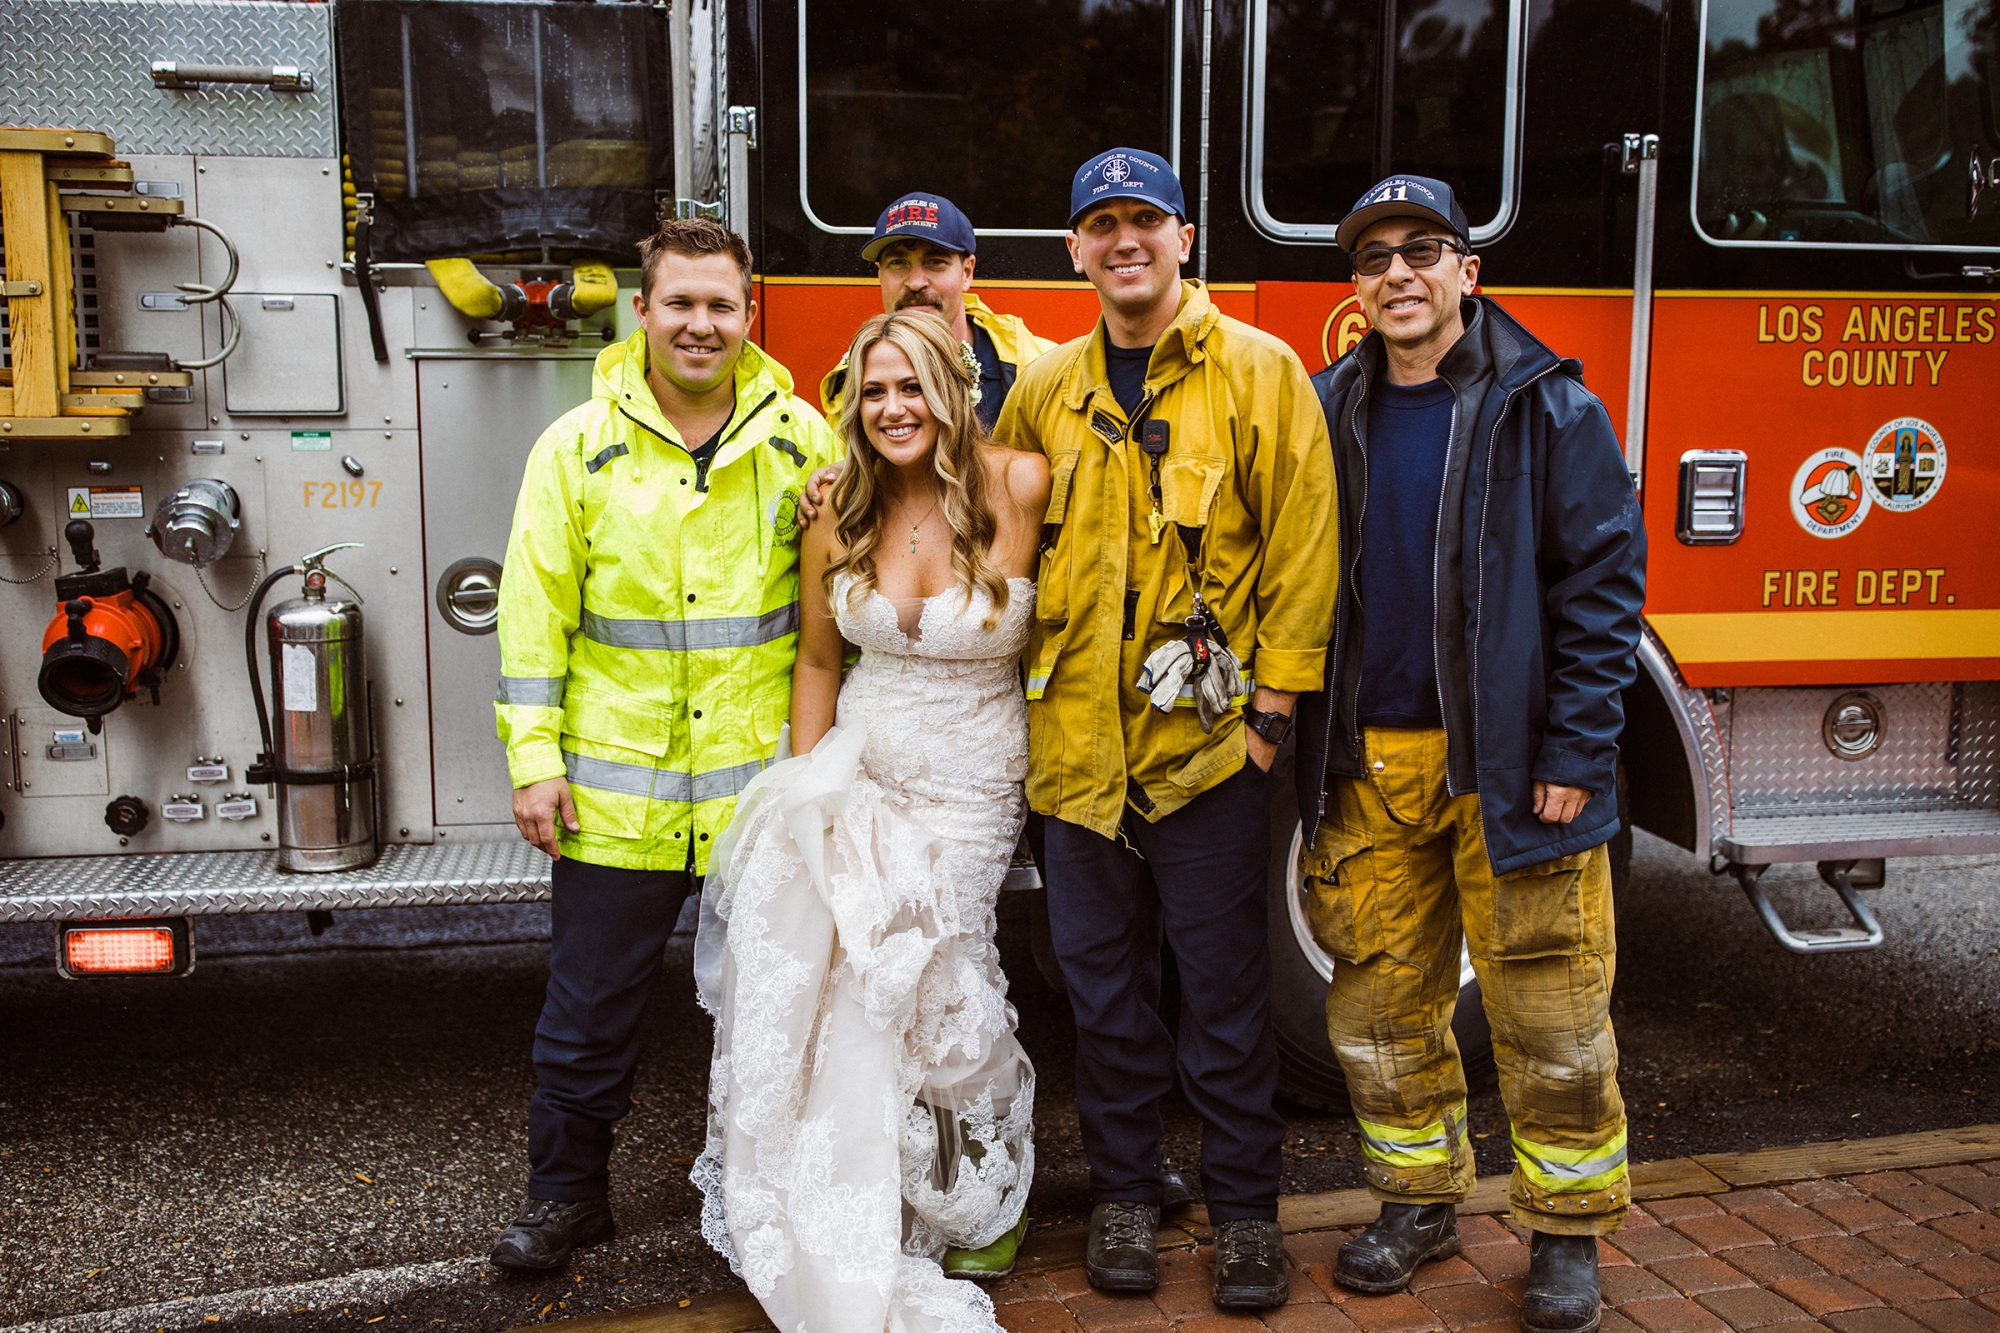 Firefighters Help Stranded Bride - Julie and Geof's wedding day - firefighters escorting Julie to wedding venue at the 1909 in Topanga Canyon